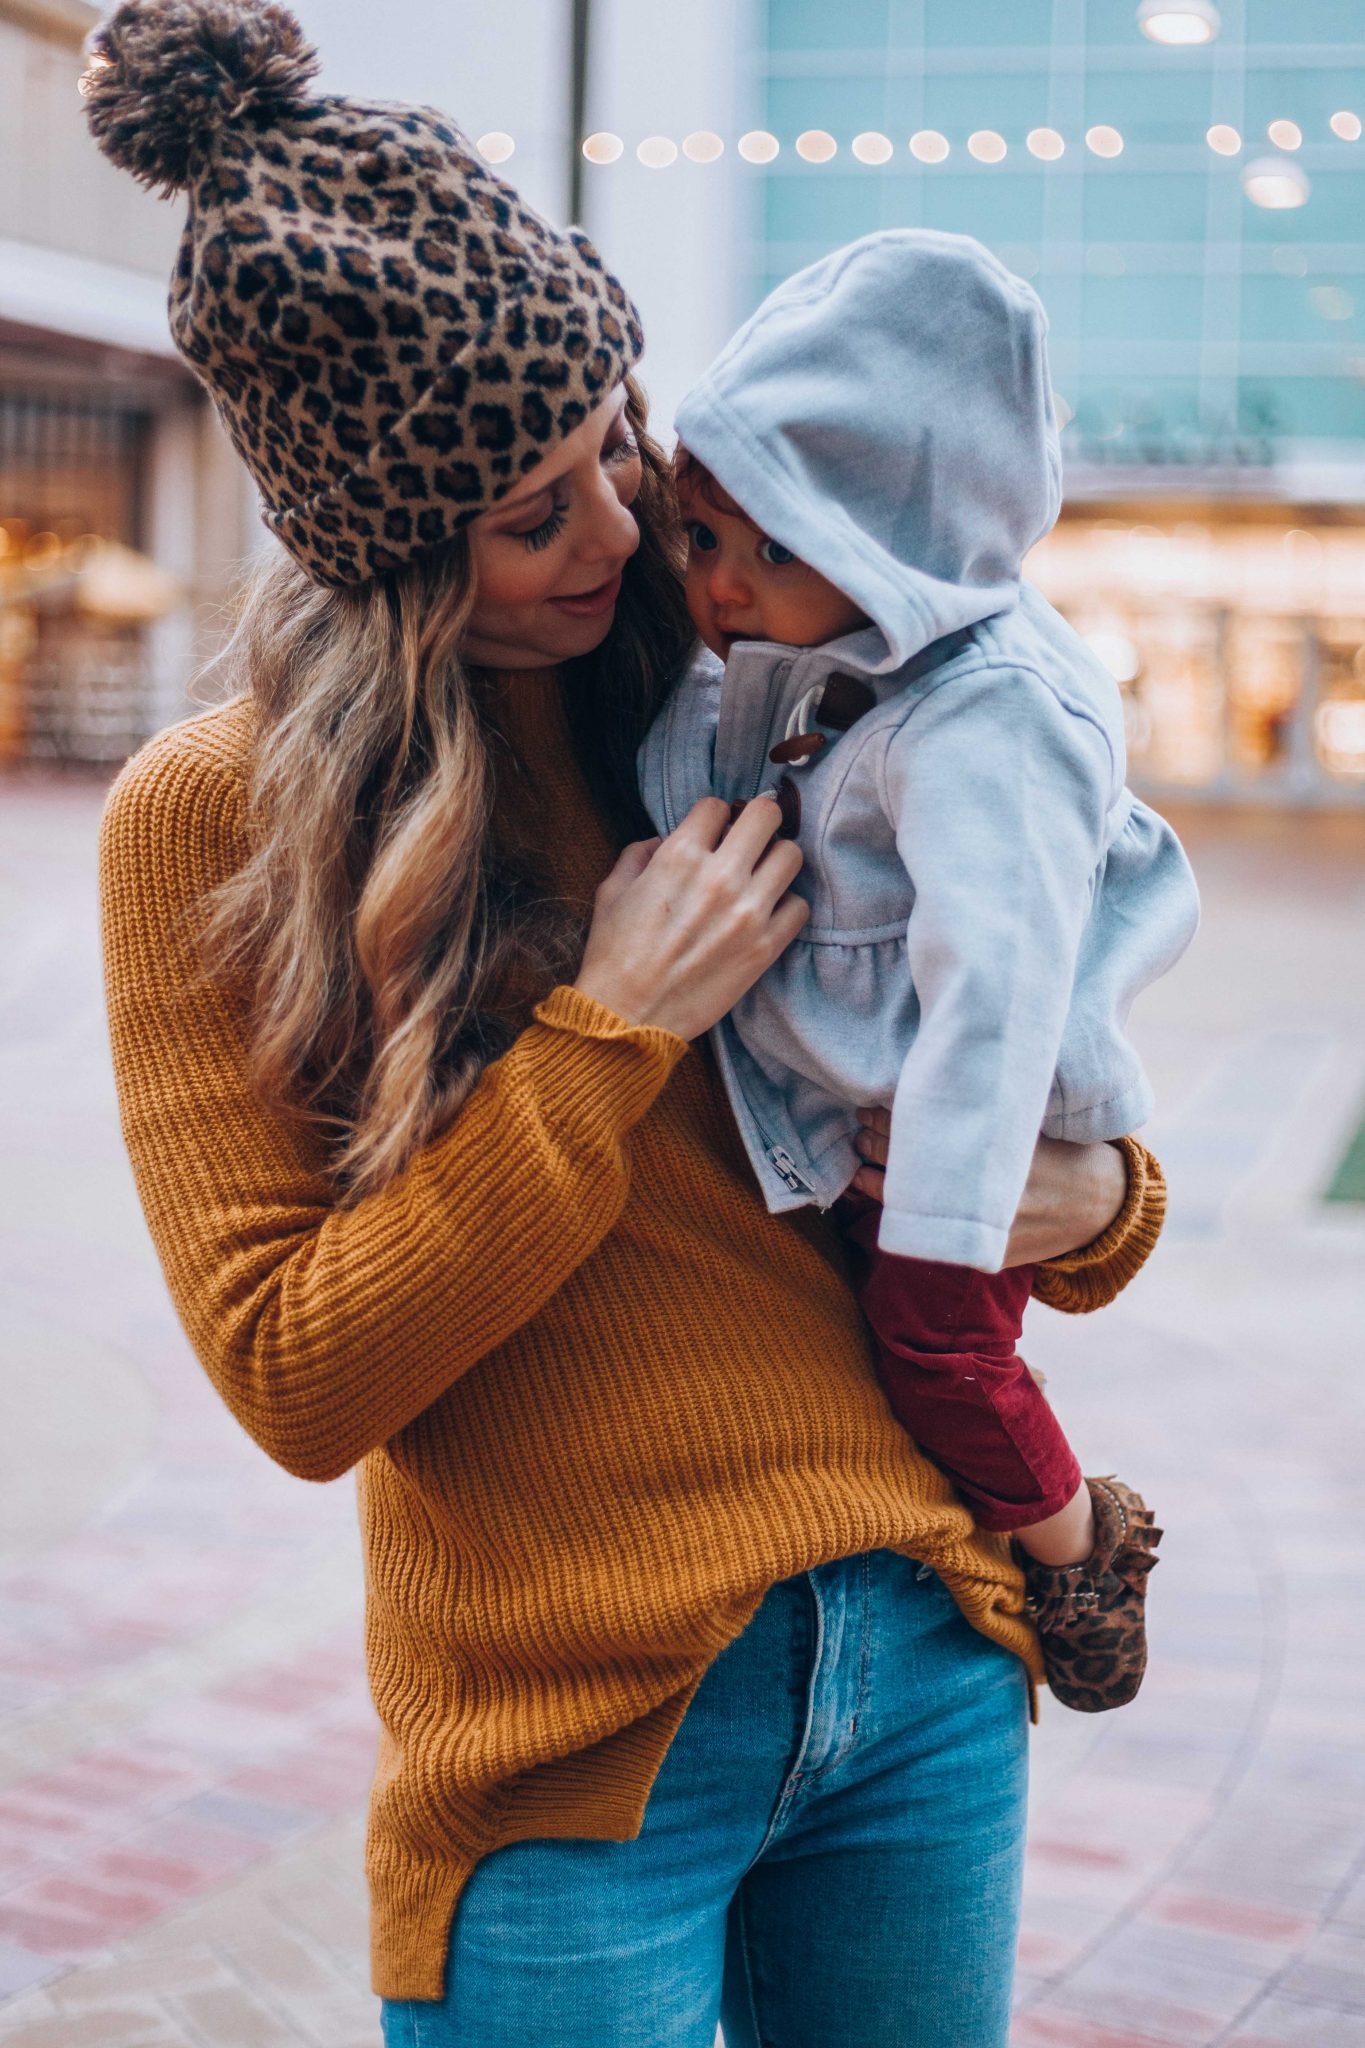 7 Mommy Daughter Date Ideas with Londyn by popular San Francisco mom blogger The Girl in the Yellow Dress